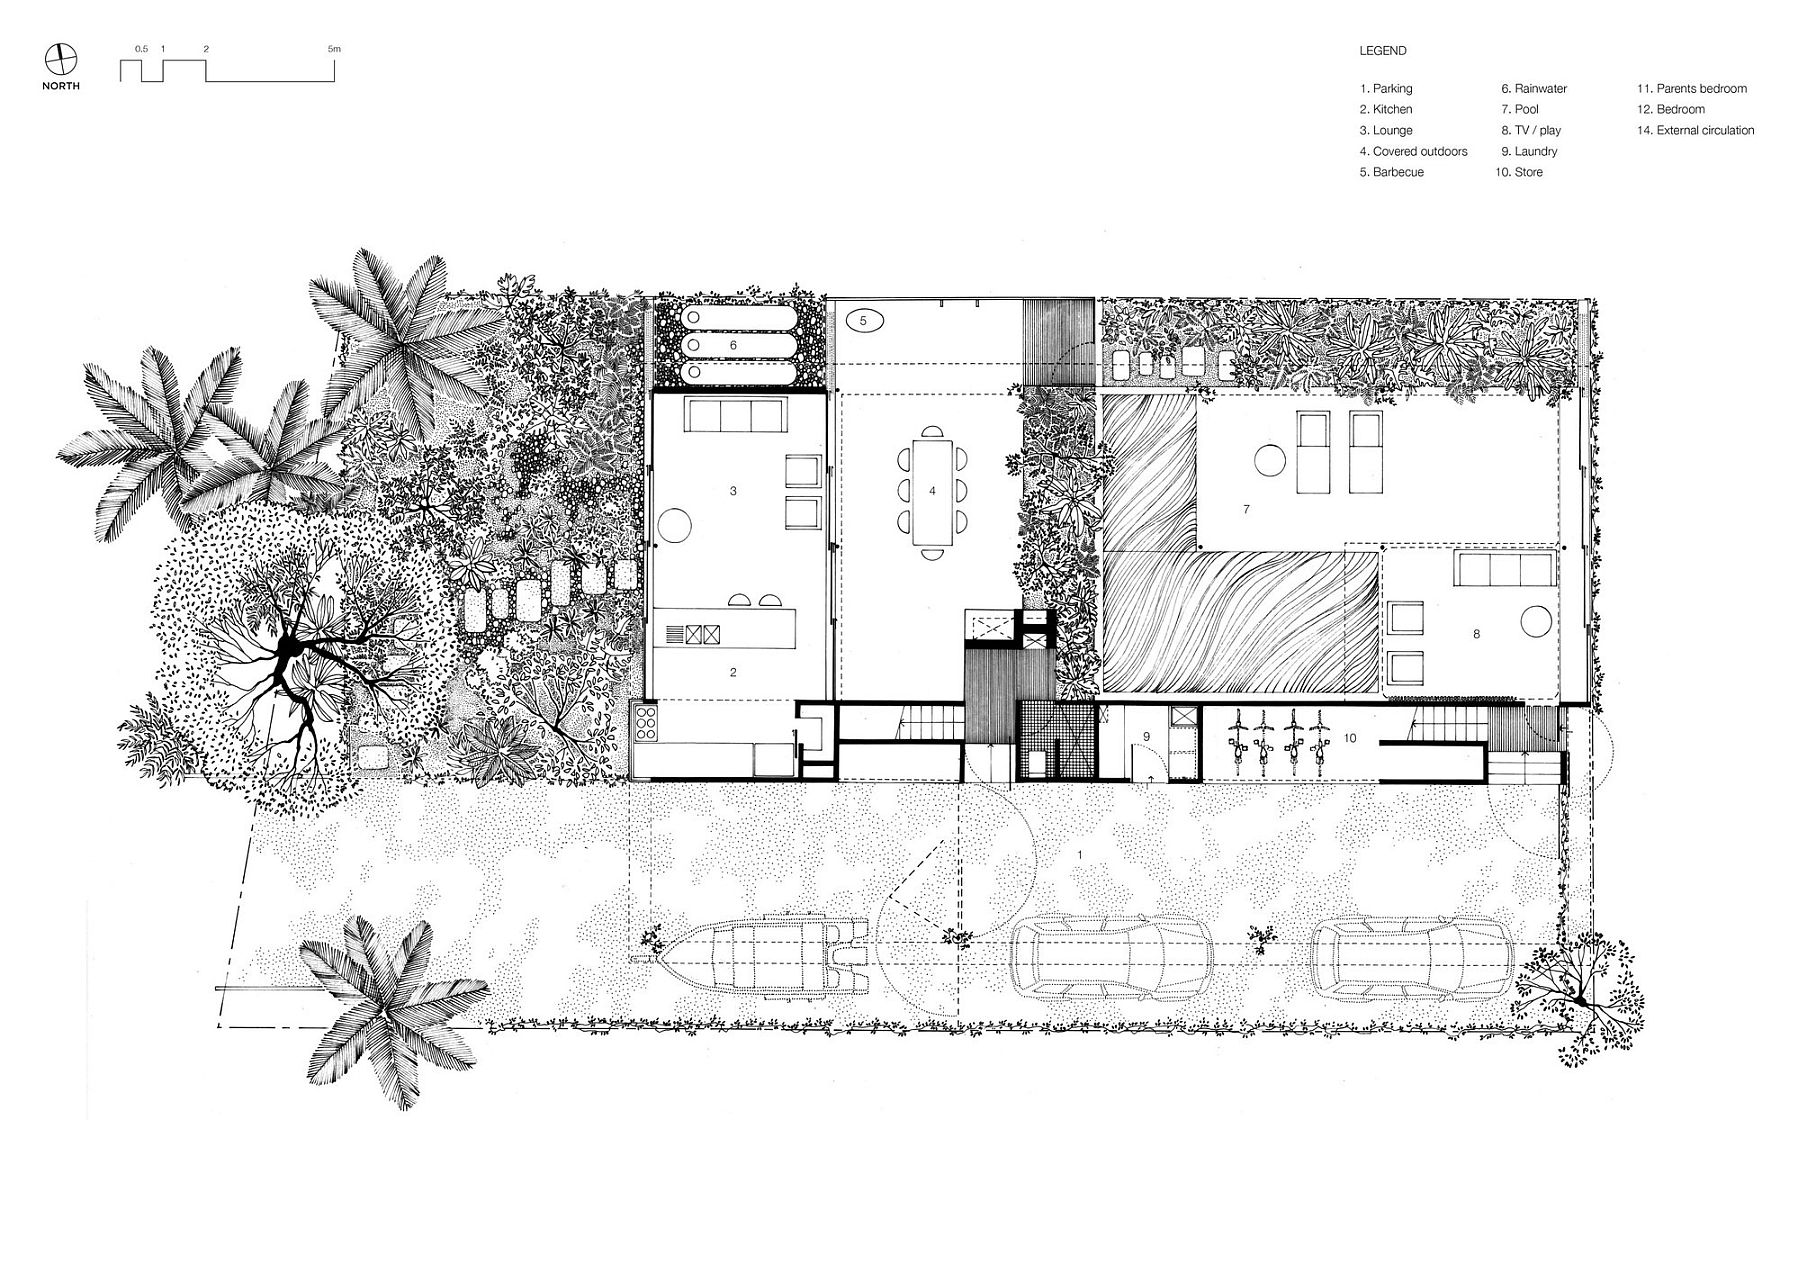 Lower level floor plan of the verandah style Aussie home